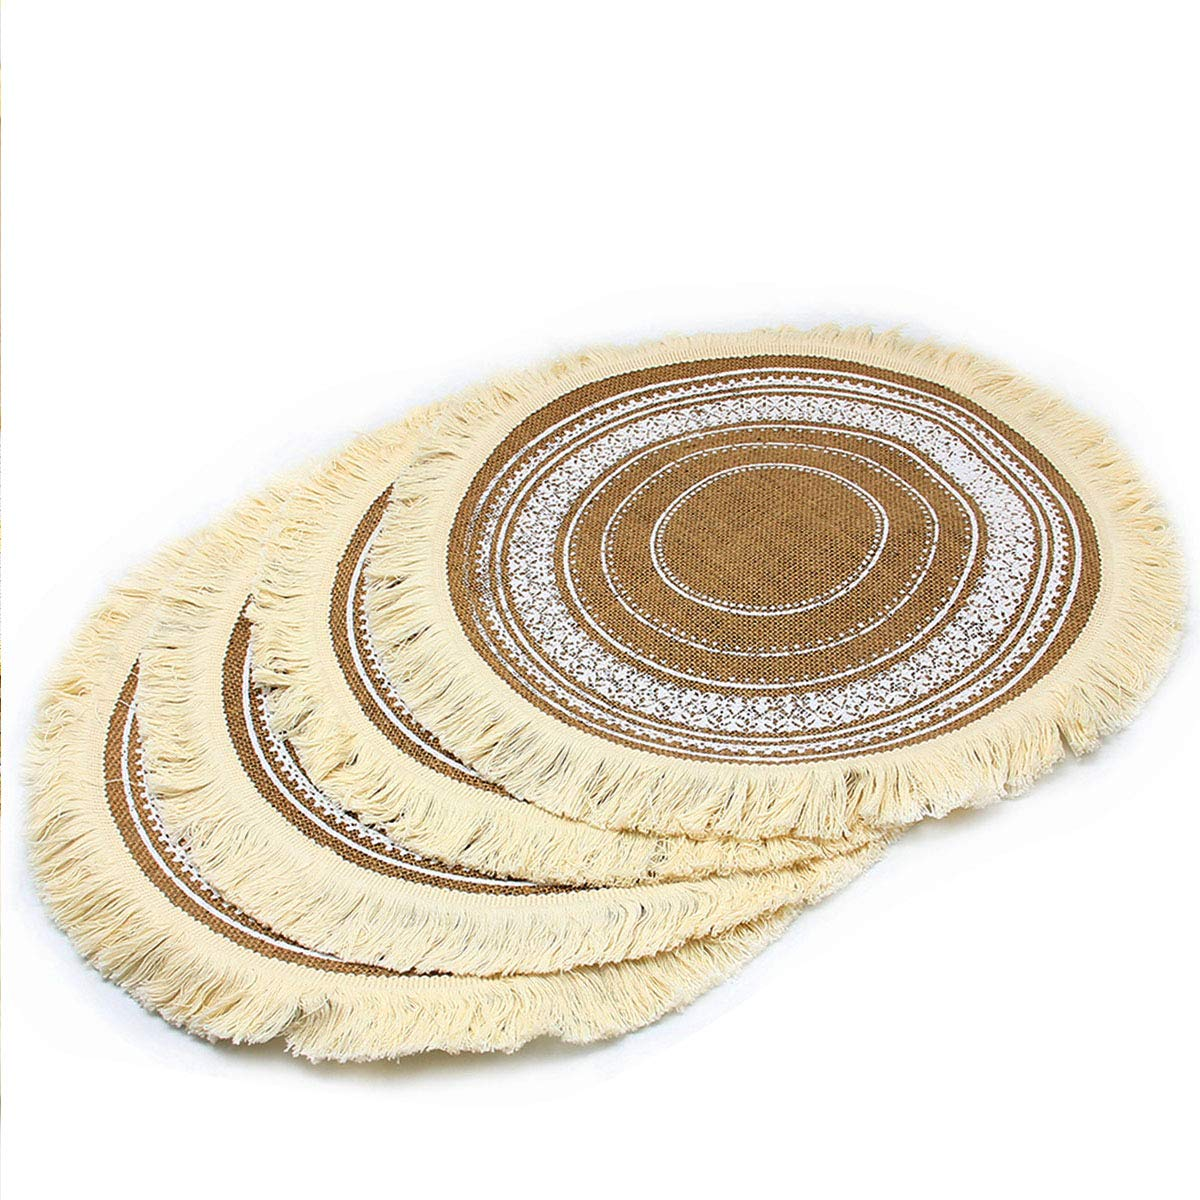 "HOMETOOK 100% Jute Rustic Vintage 17"" Round Placemat Decorated with Tassels for Parties BBQ's Everyday & Holidays Use (Set of 4) (Printing)"